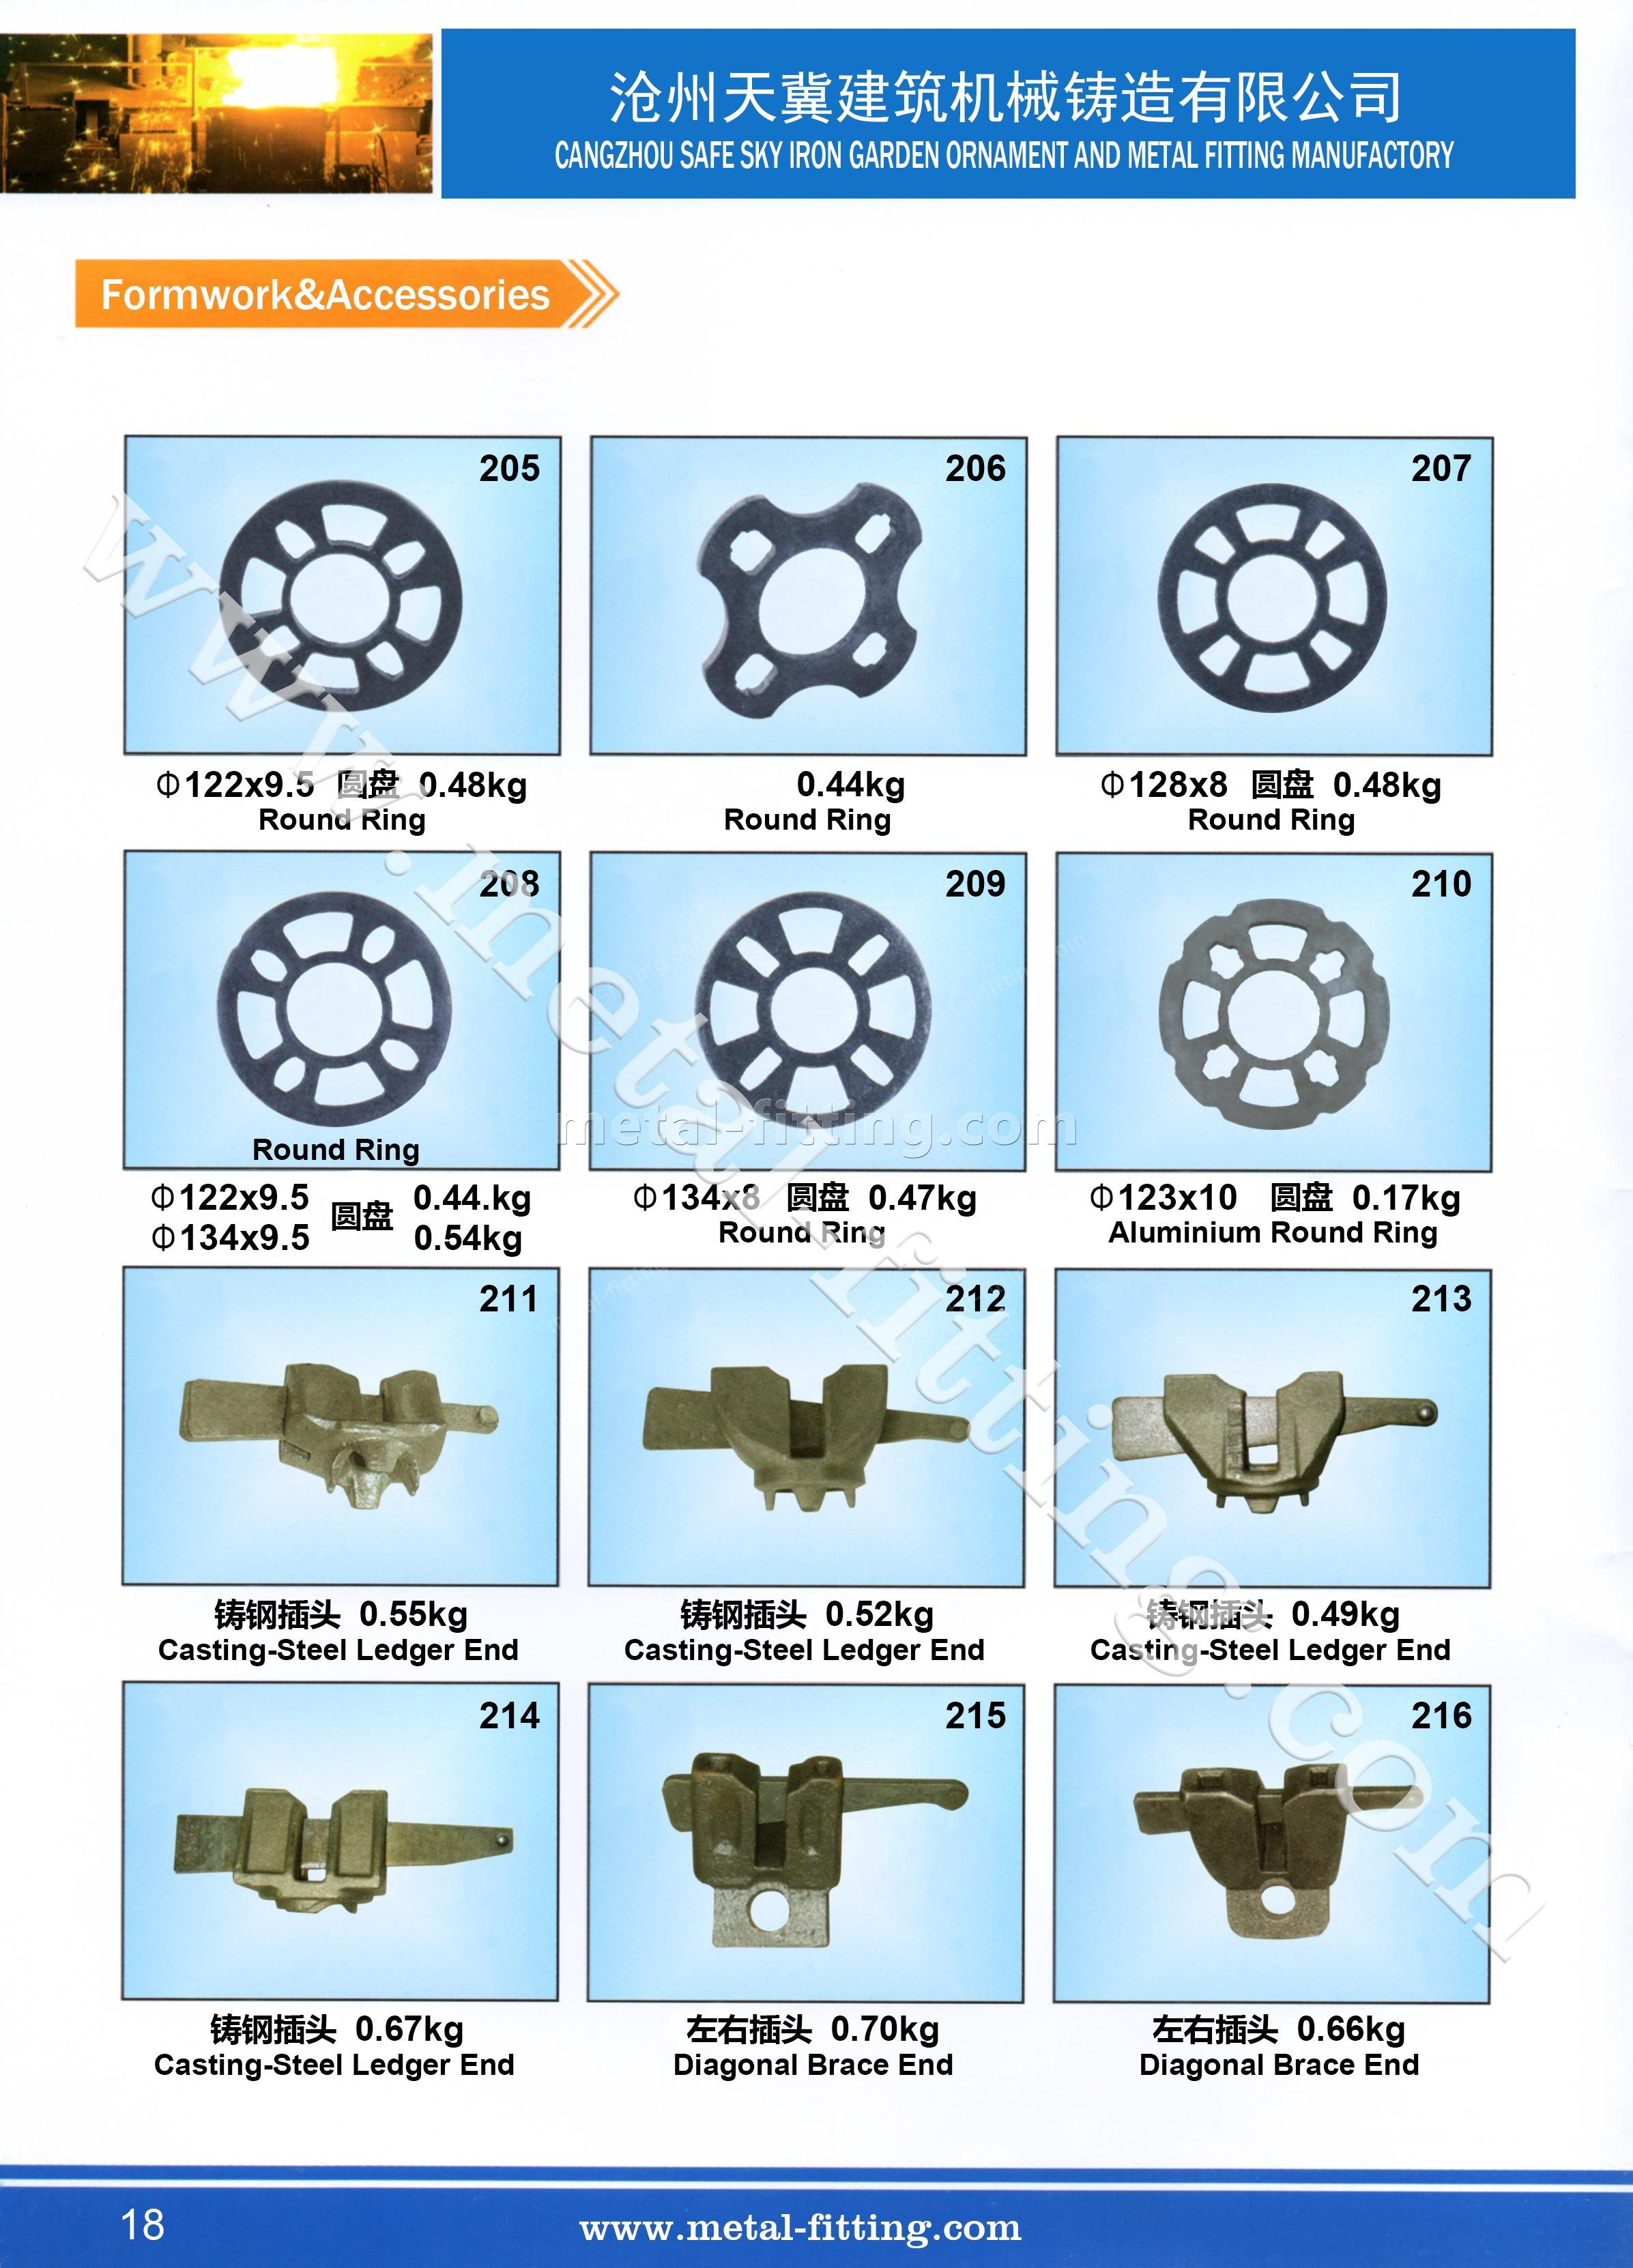 casting steel metal fitting, scaffolding system-18